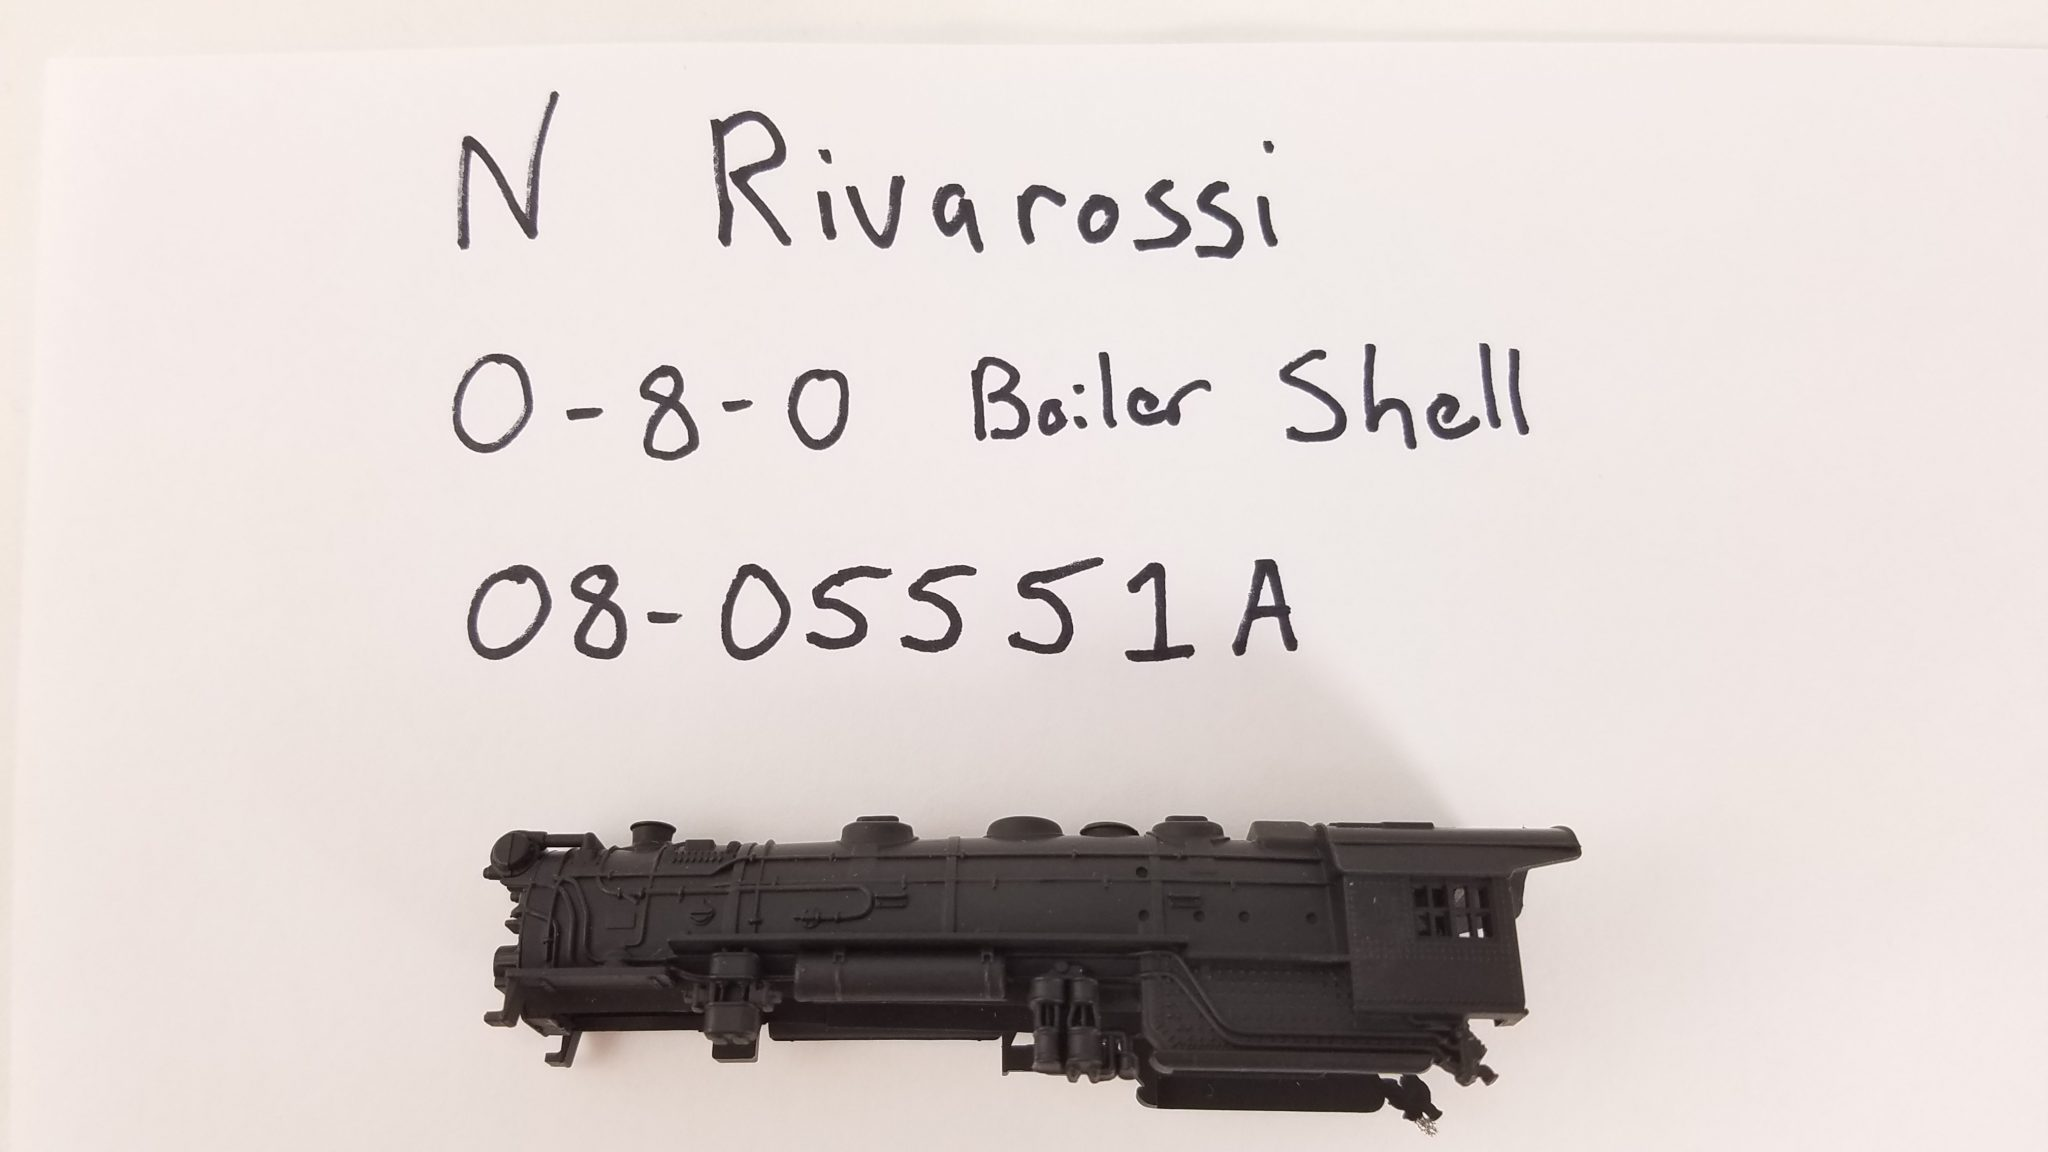 N Rivarossi 0-8-0 Boiler shell, undecorated